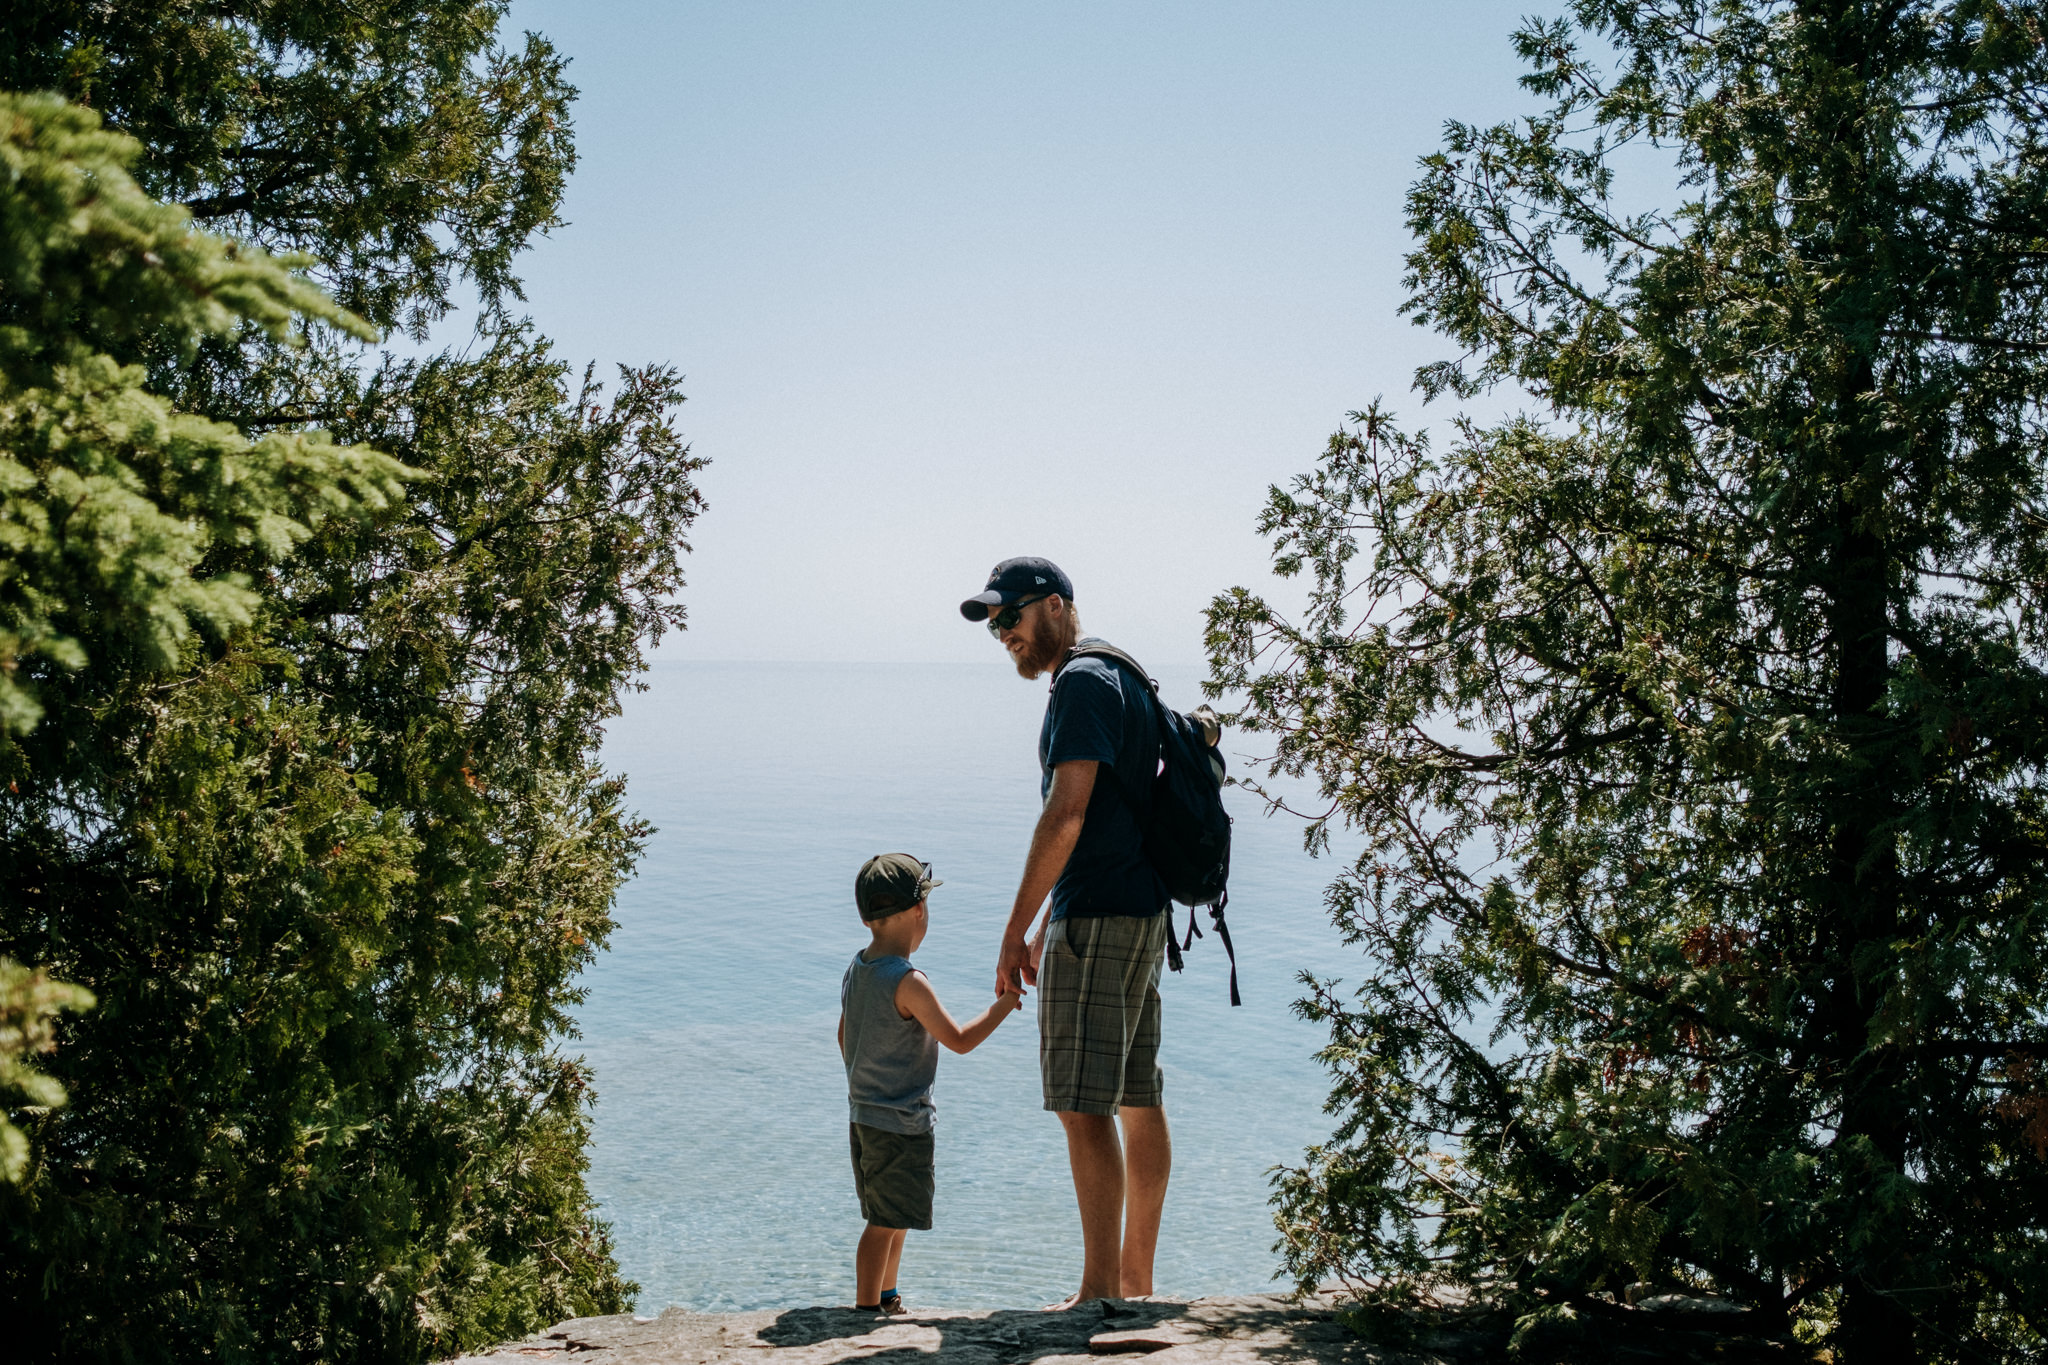 Tobermory Family Photographer, Camping, Bruce Peninsula Photos, Bruce Peninsula National Park